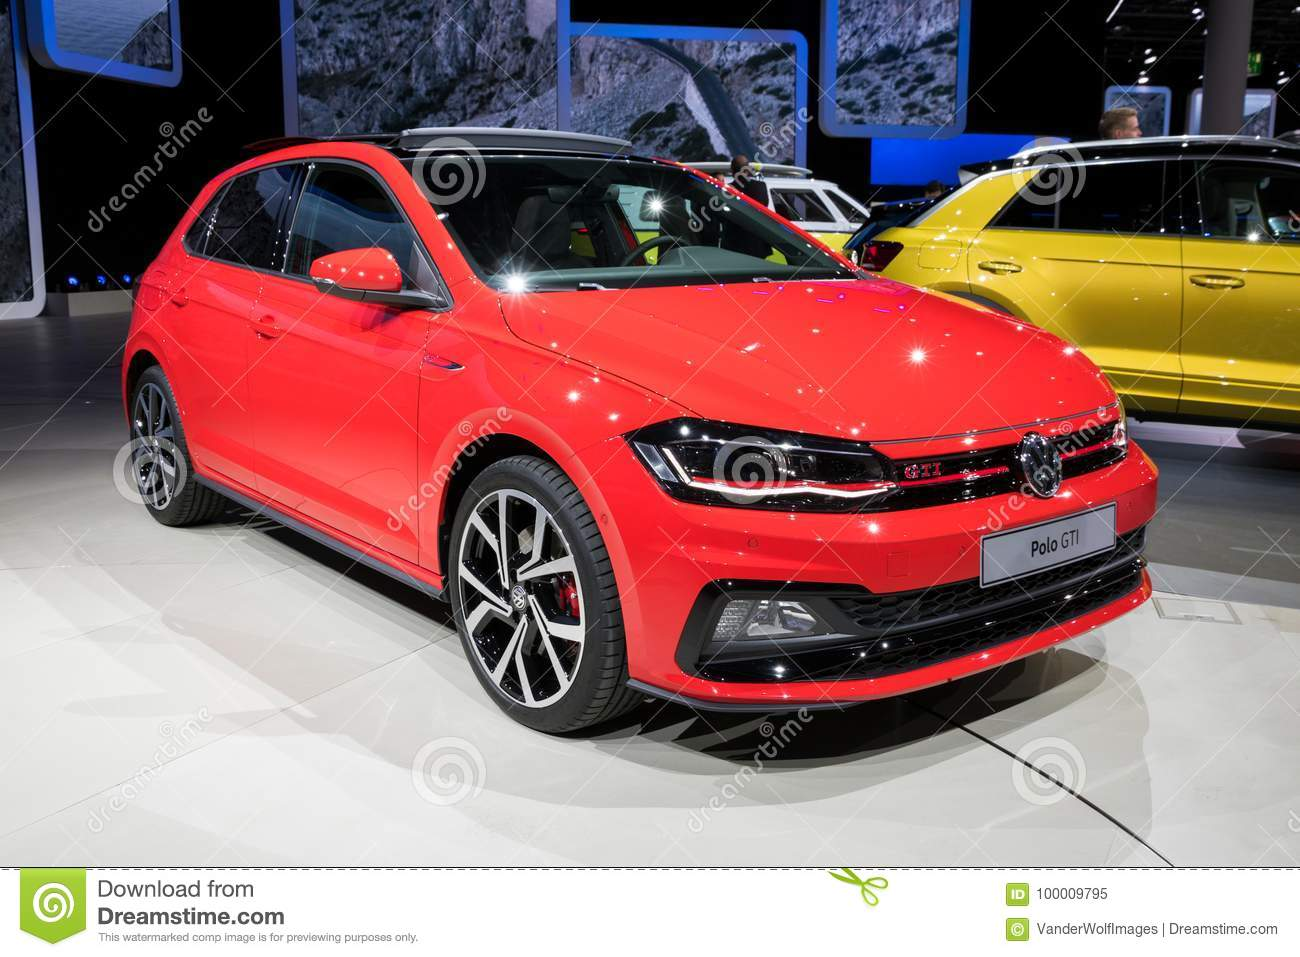 Red 2018 Vw Polo Gti Car Editorial Image Image Of Automotive 100009795